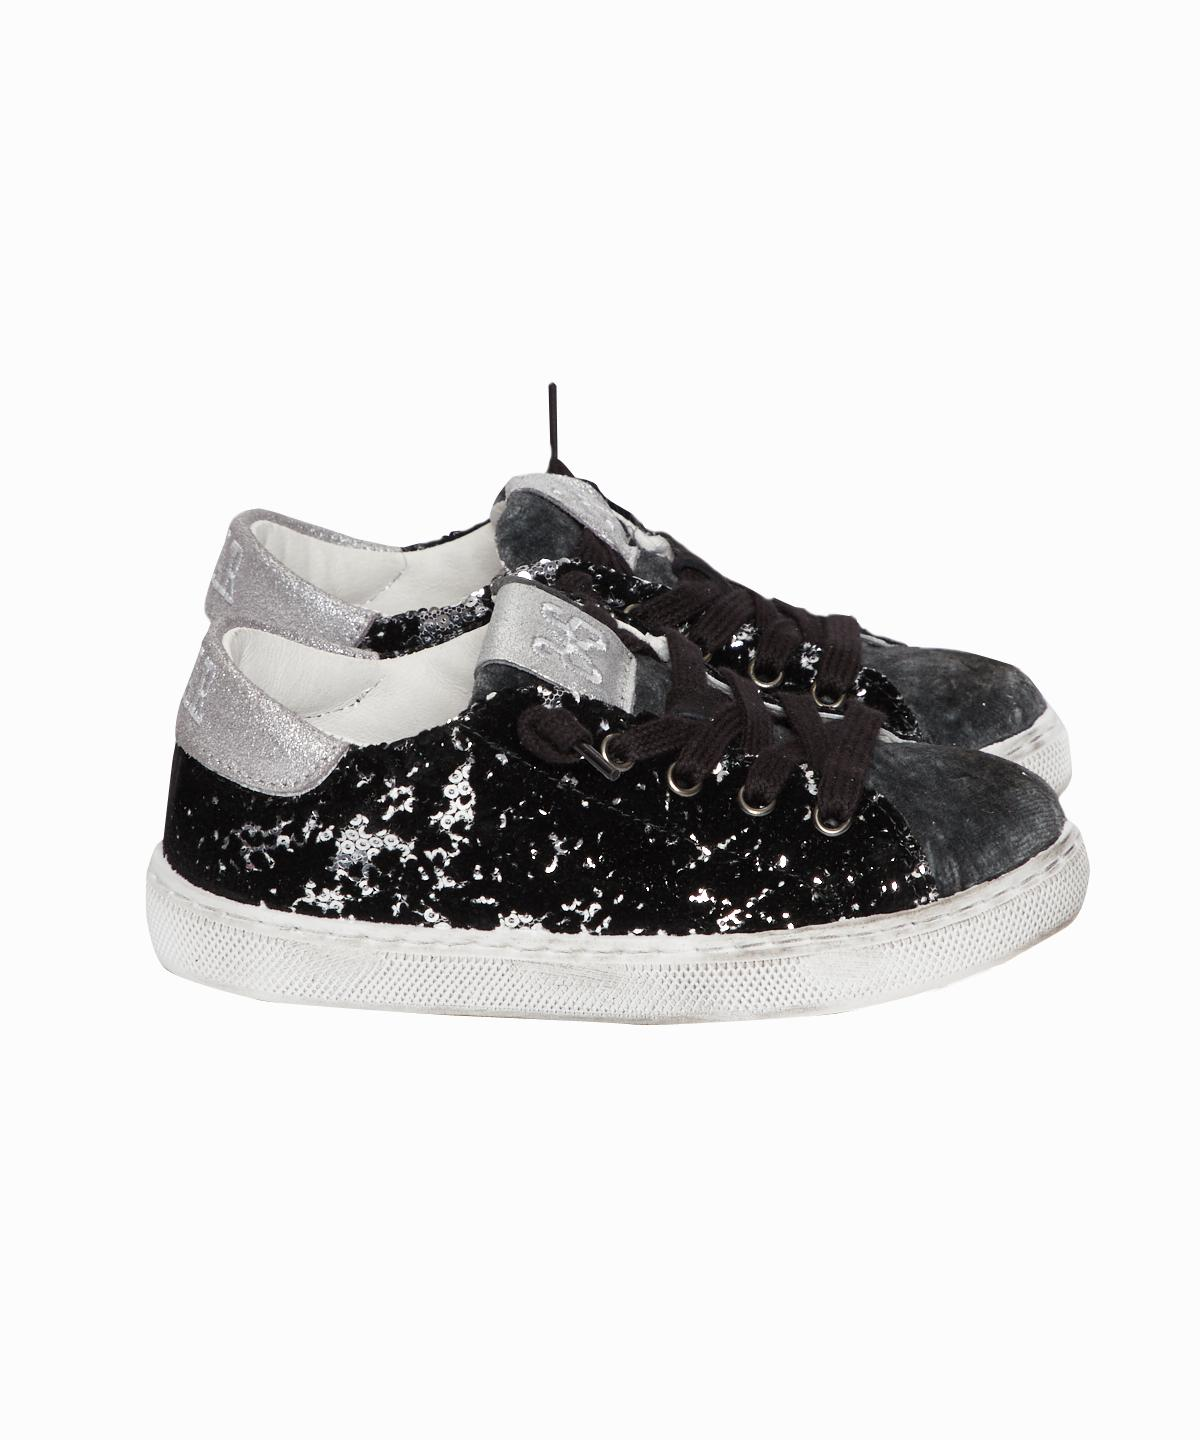 Silver Sequin/Black Velvet Sneakers